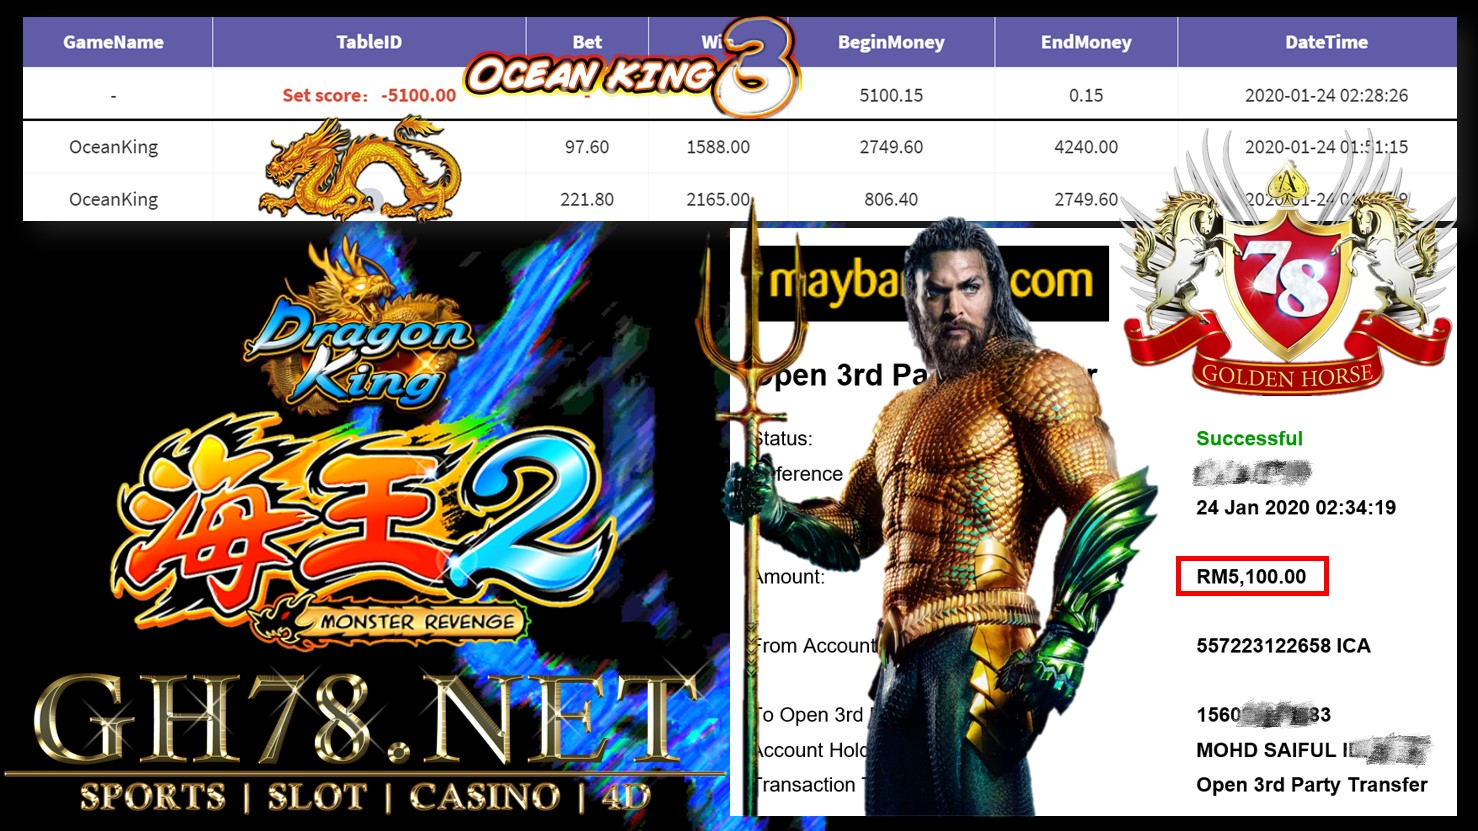 2020 NEW YEAR !!! MEMBER MAIN 918KISS, OCEAN KING ,WITHDRAW RM5100 !!!